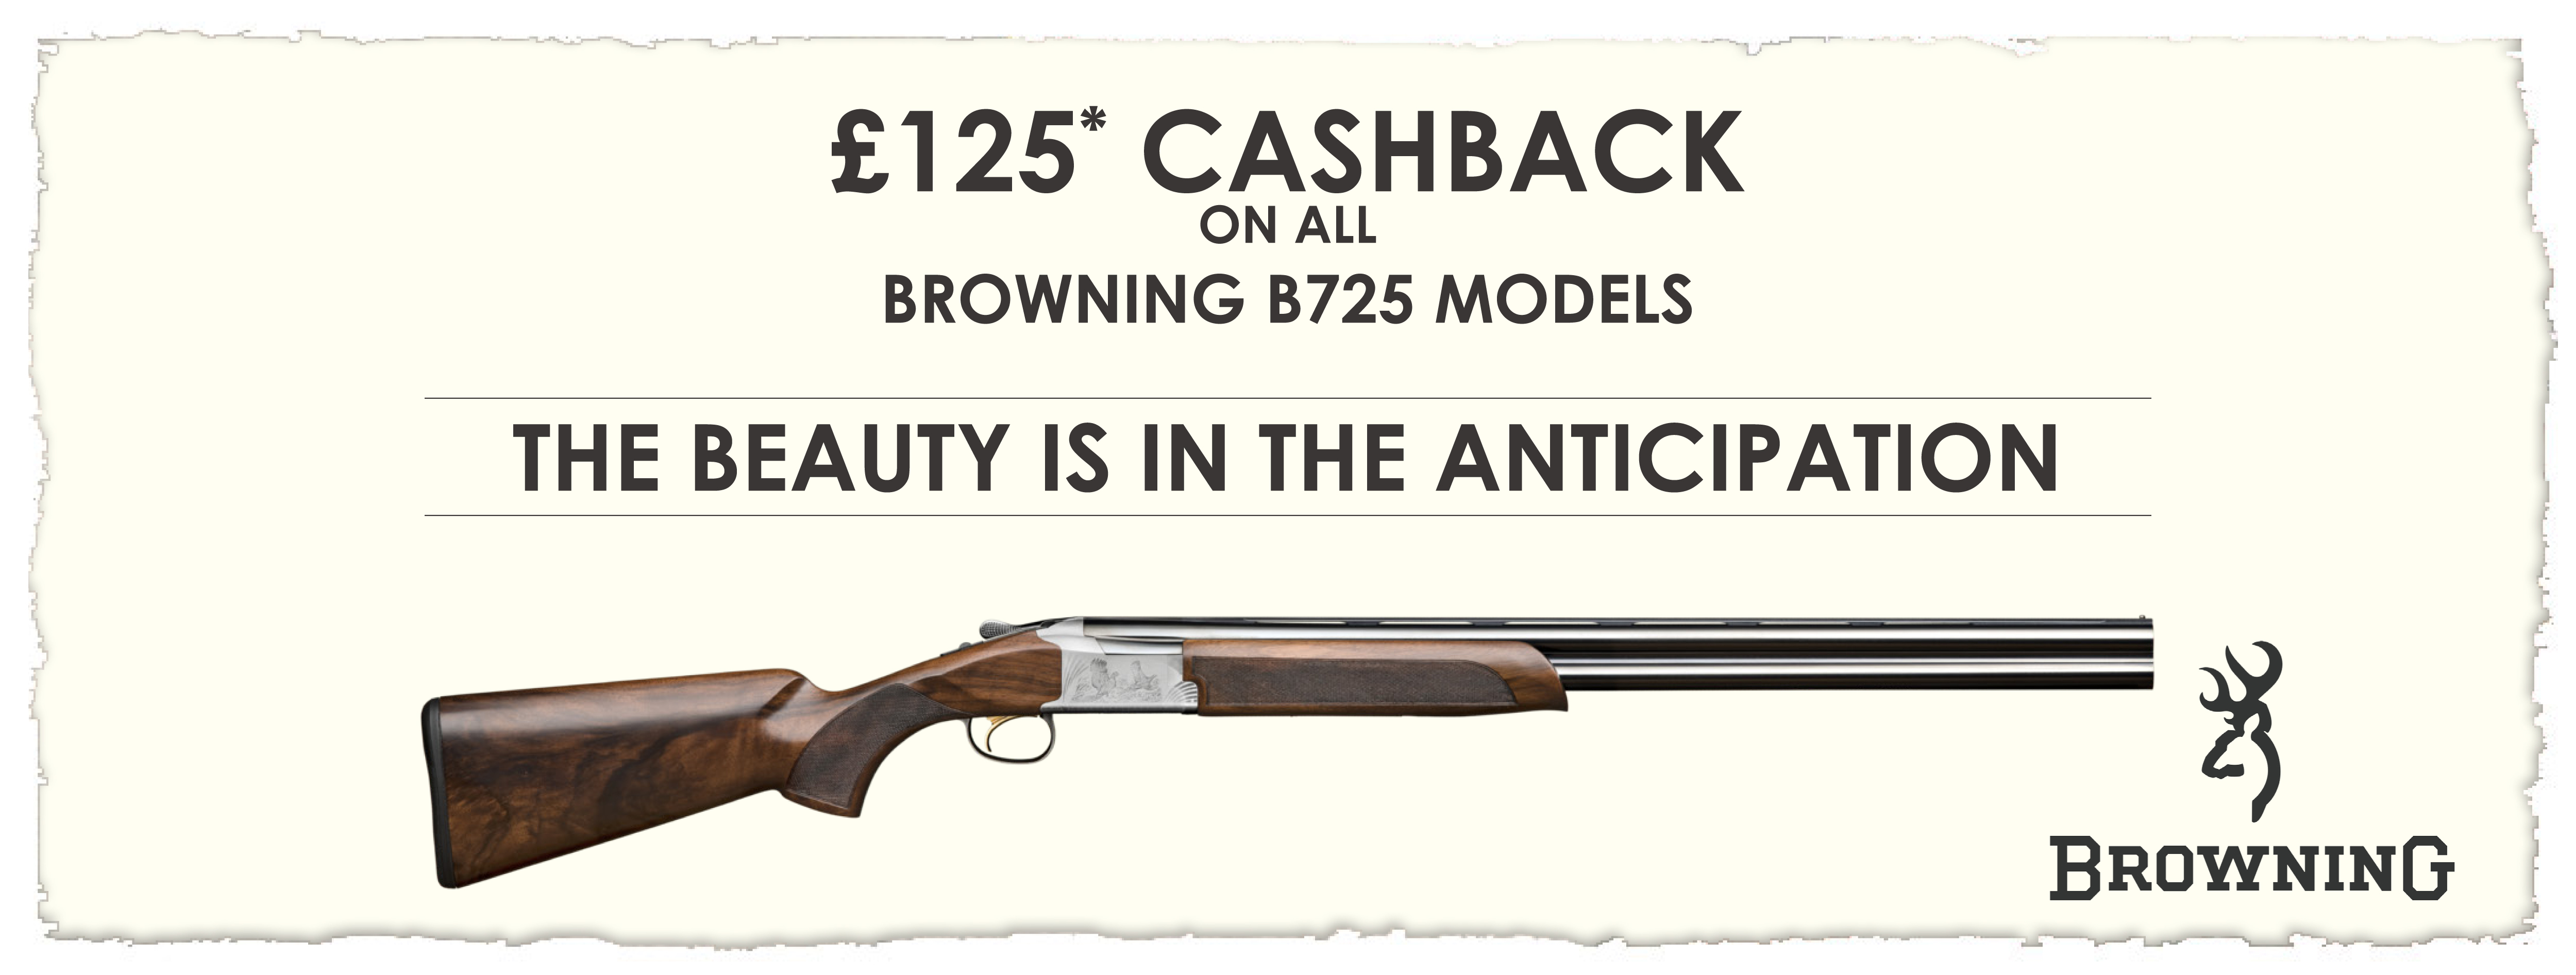 £125 Cashback on all Browning B725 Models